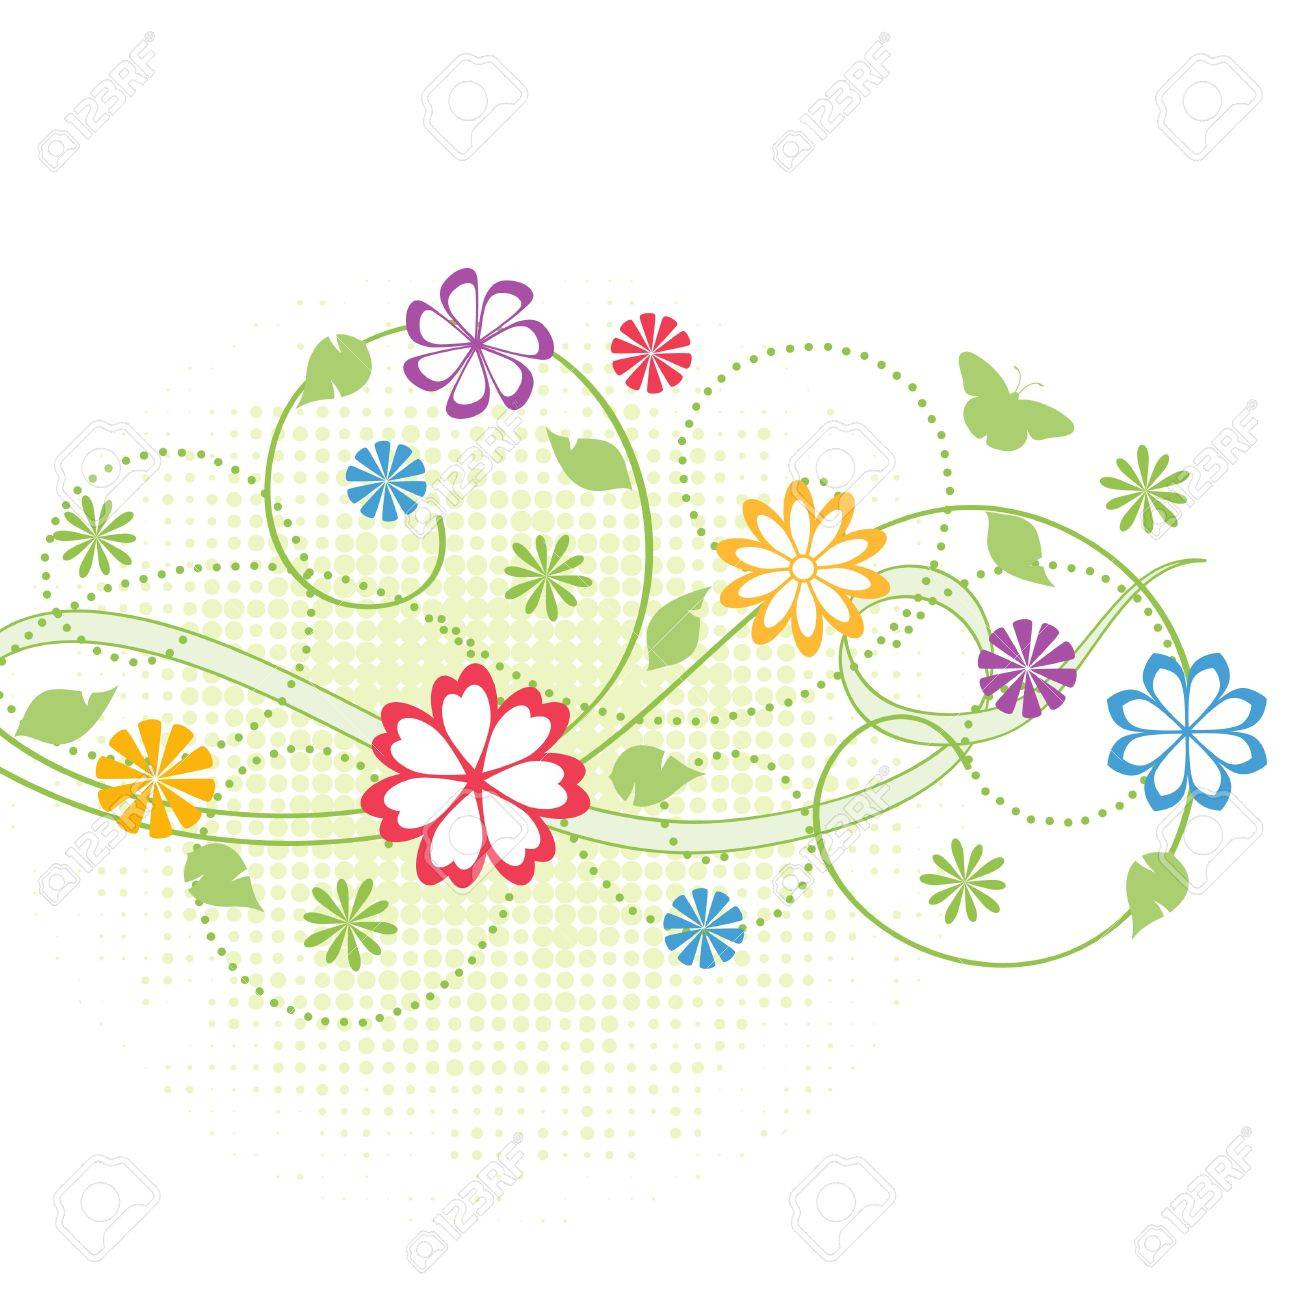 Floral background. Stock Vector - 9919115